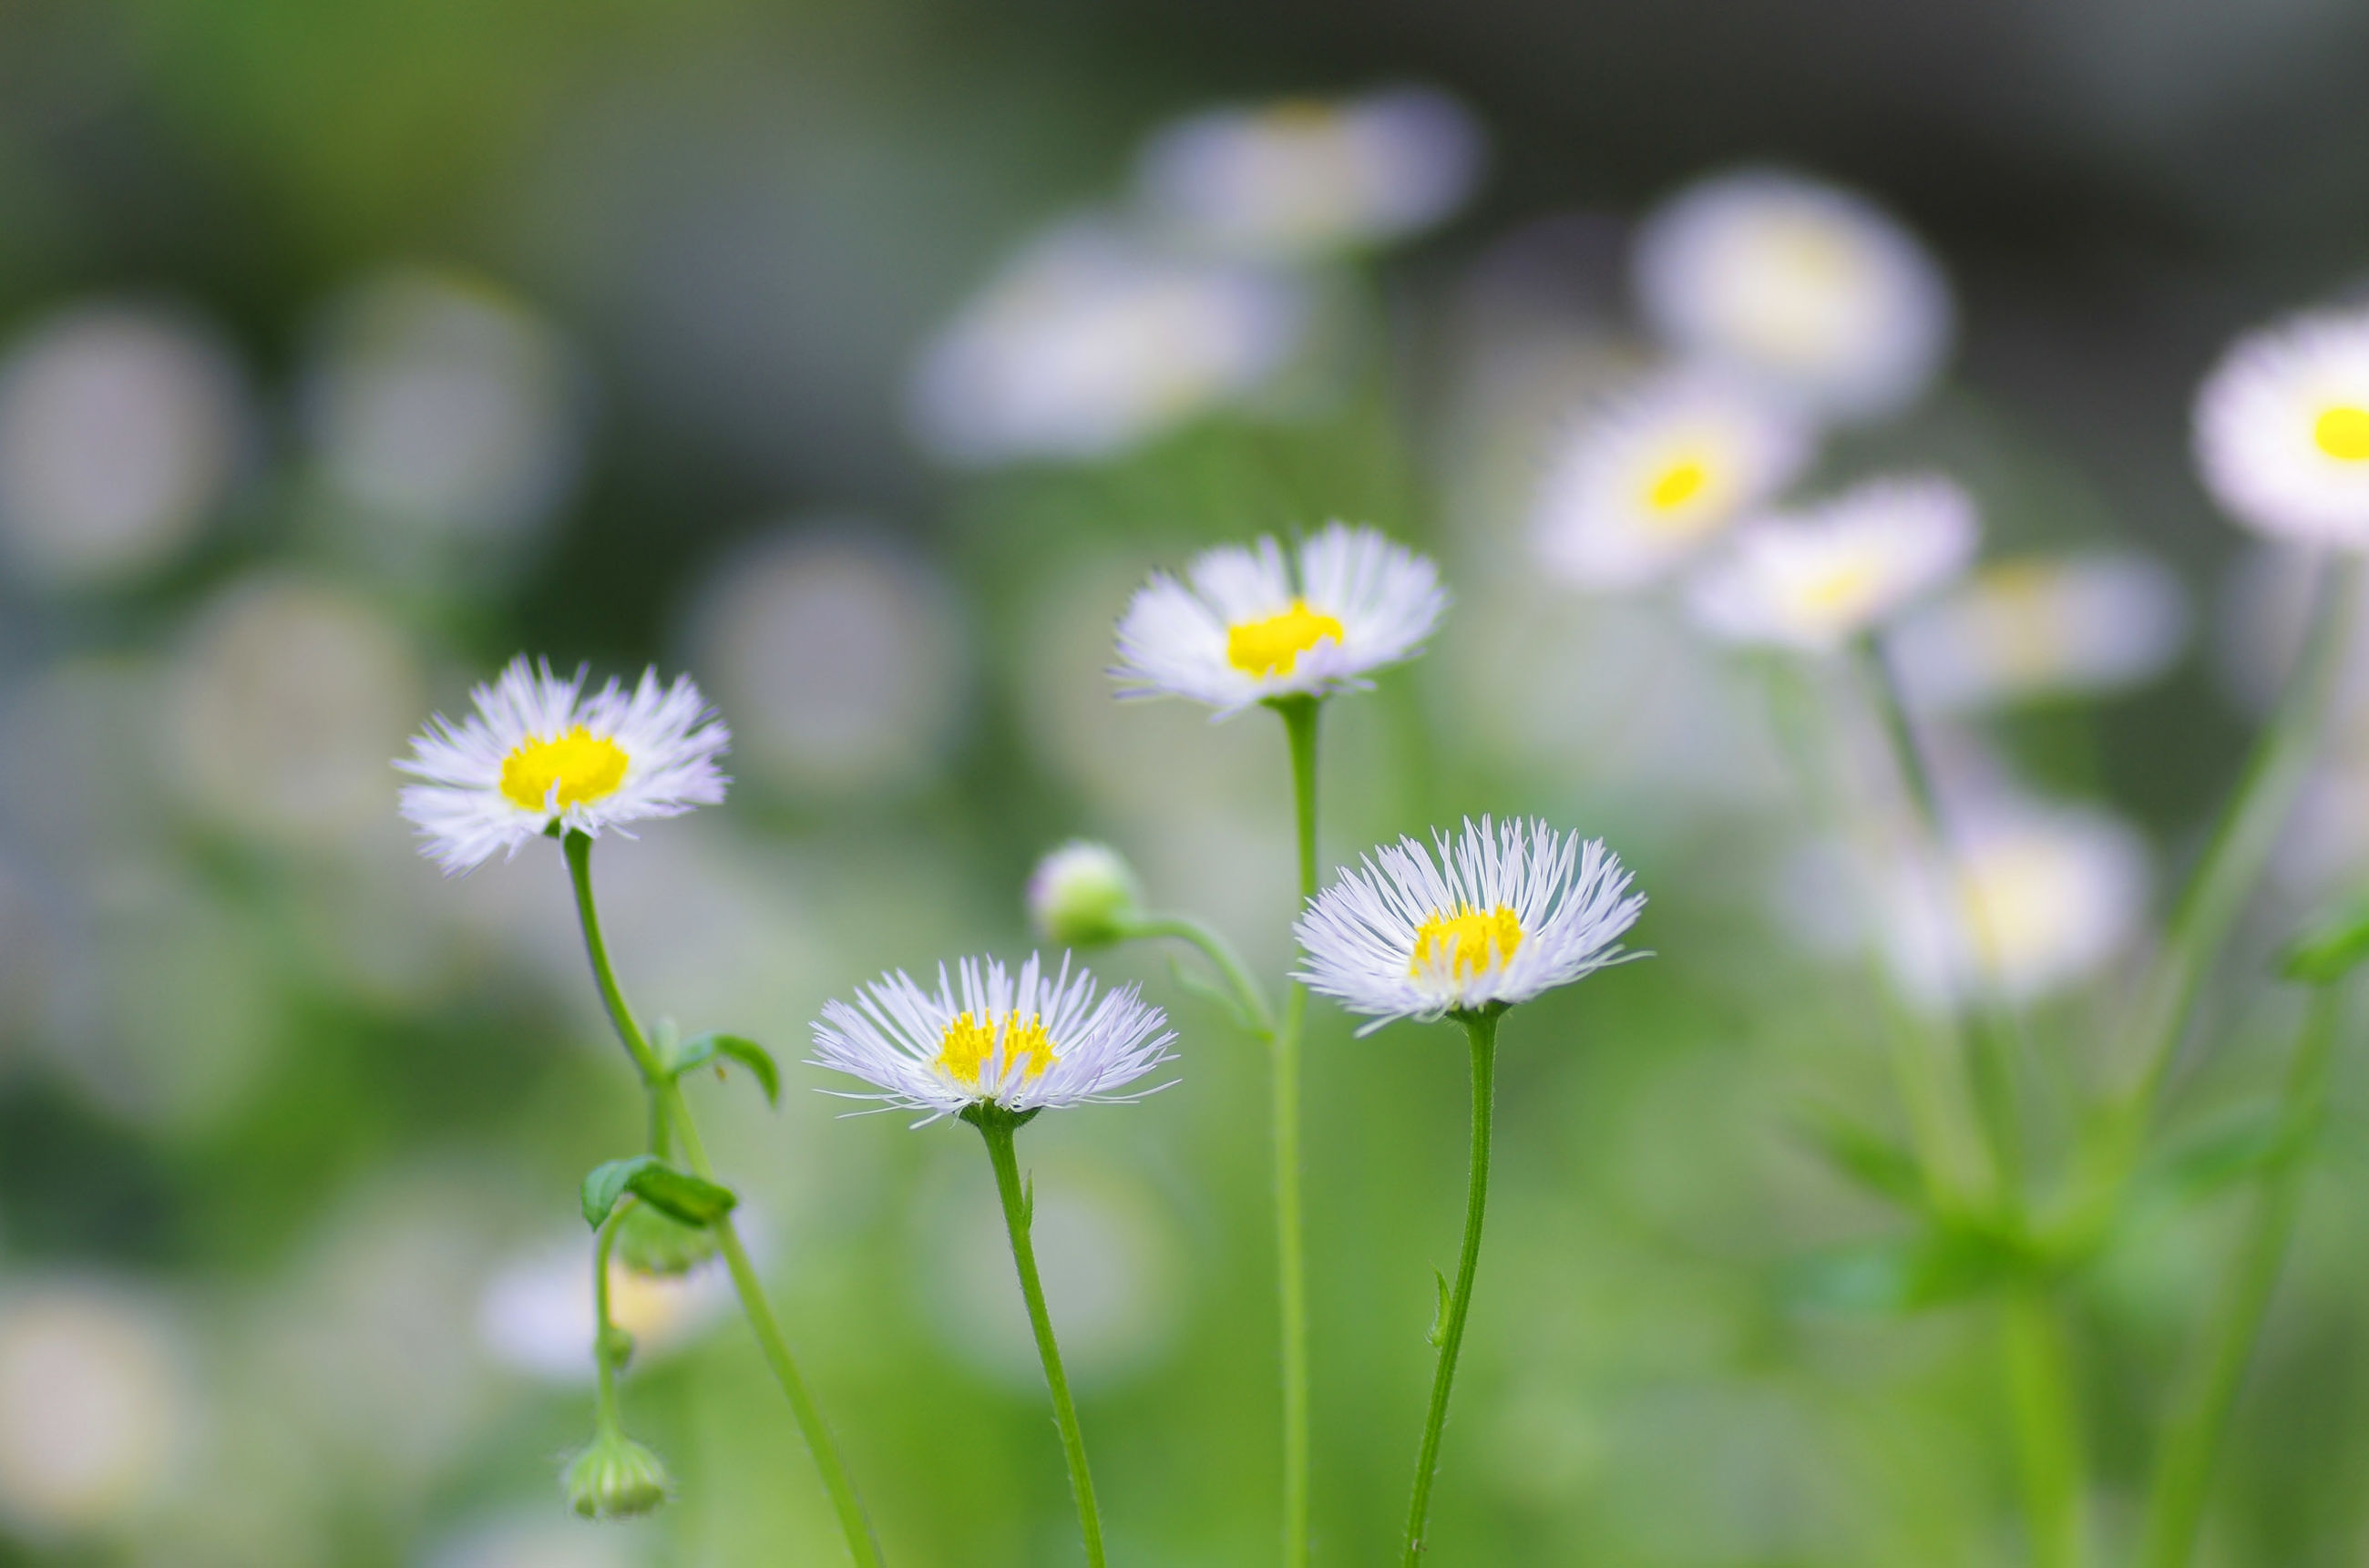 flower, freshness, fragility, daisy, growth, petal, white color, flower head, beauty in nature, focus on foreground, nature, yellow, close-up, blooming, plant, stem, selective focus, pollen, field, wildflower